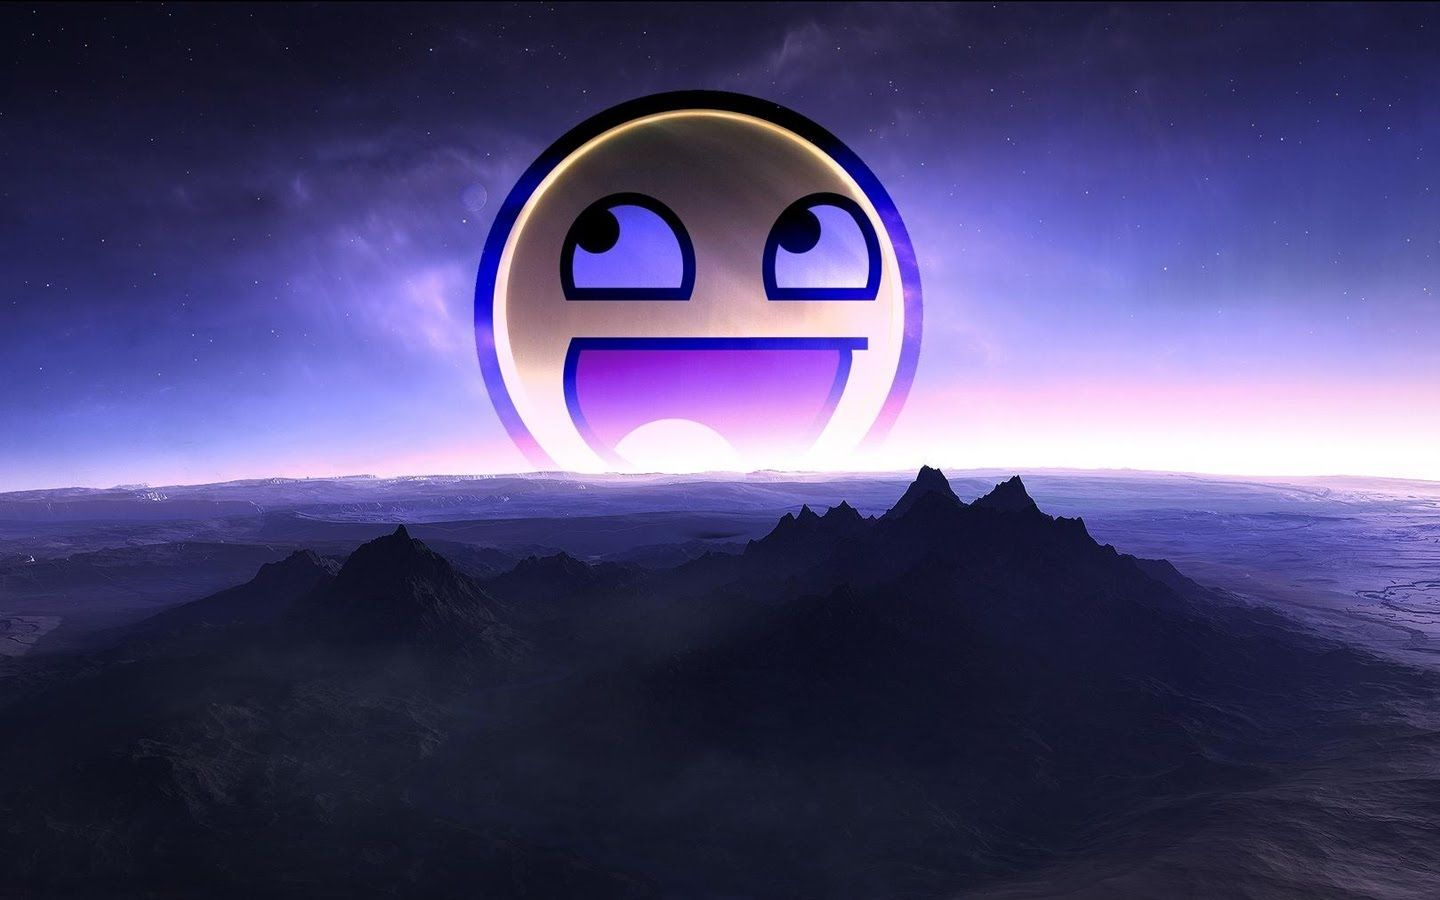 Epic Smiley Face Wallpaper